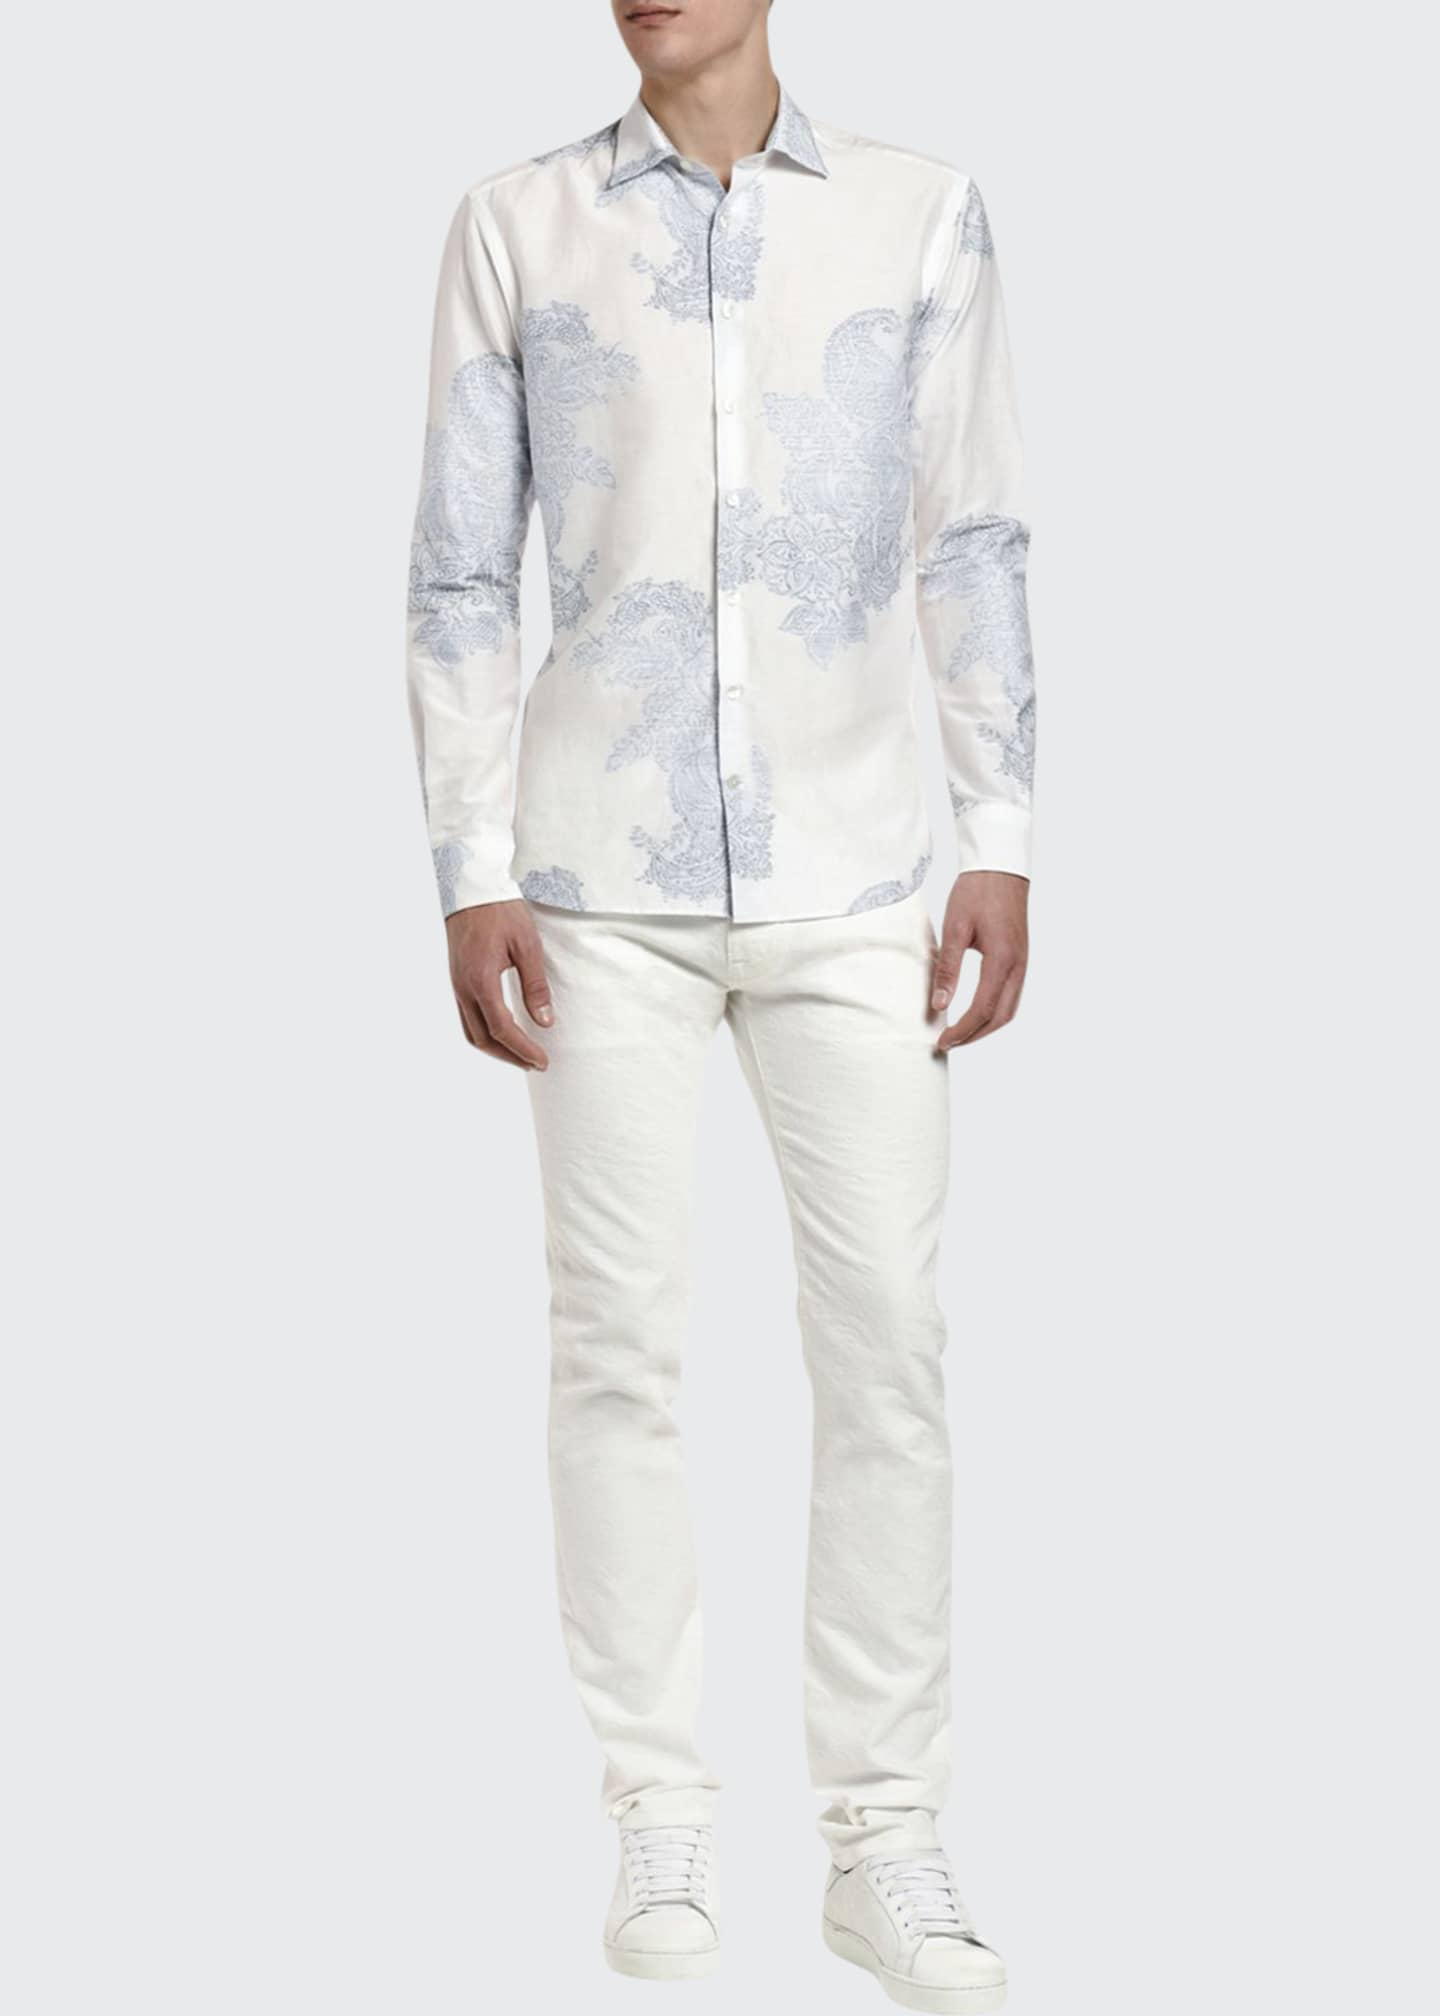 Etro Men's Faded Paisley Sport Shirt